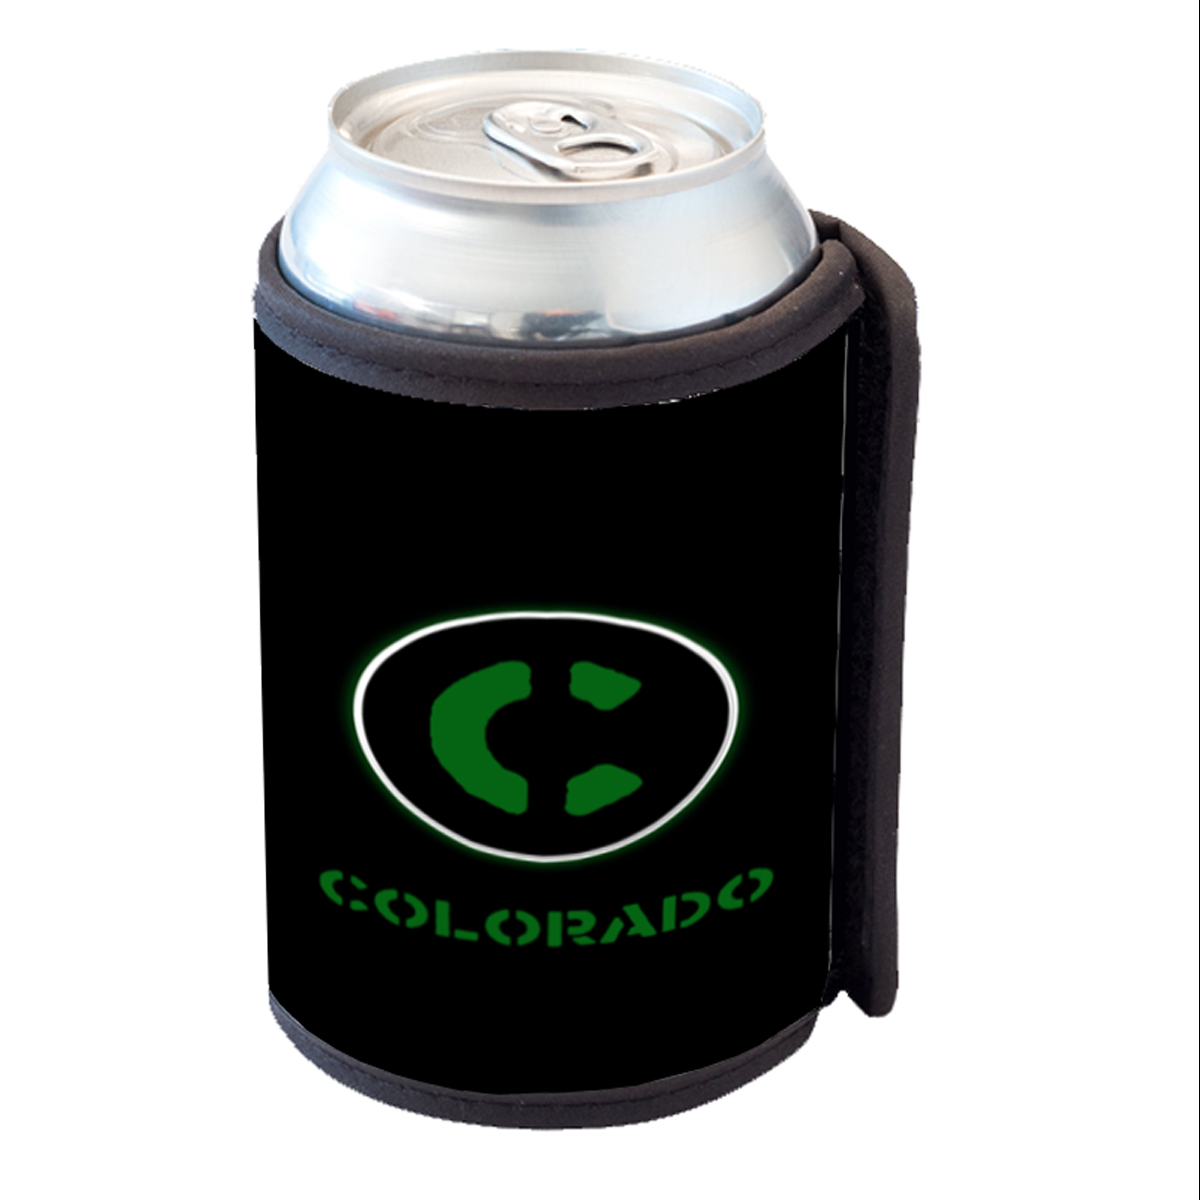 KuzmarK Insulated Drink Can Cooler Hugger - Colorado